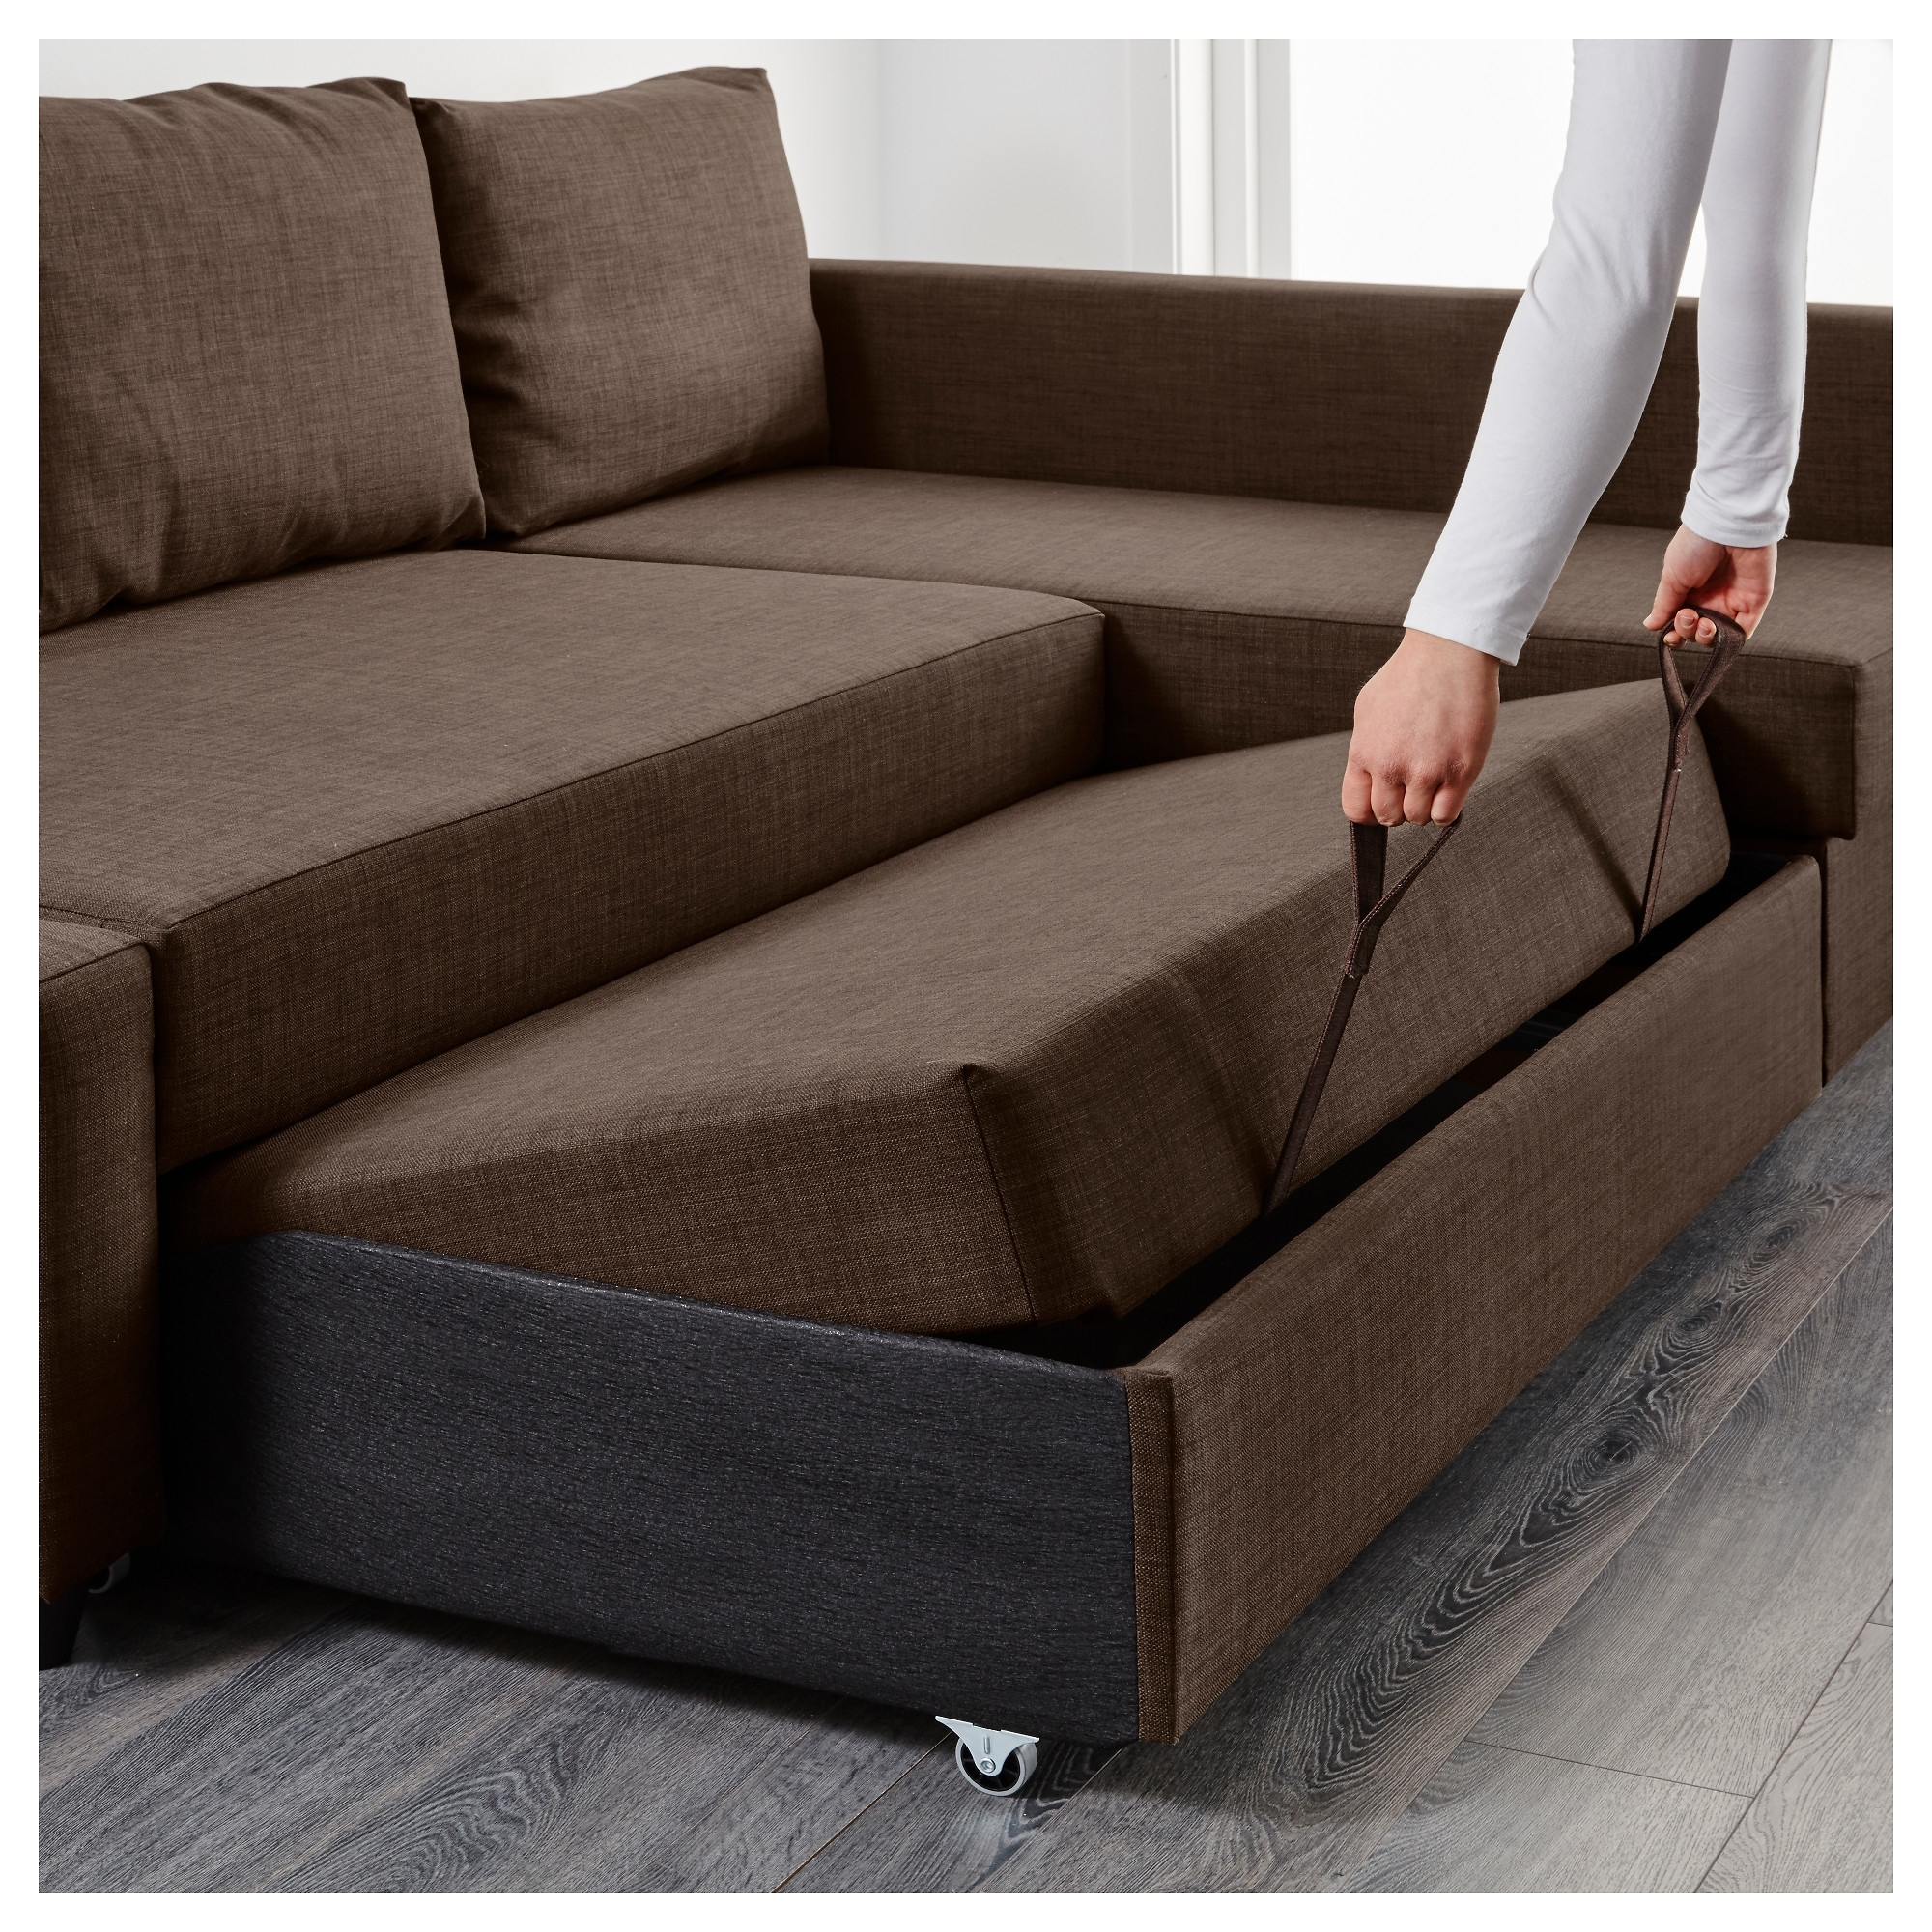 Widely Used Sofa Chaise Convertible Beds Inside Friheten Sleeper Sectional,3 Seat W/storage – Skiftebo Dark Gray (View 10 of 15)